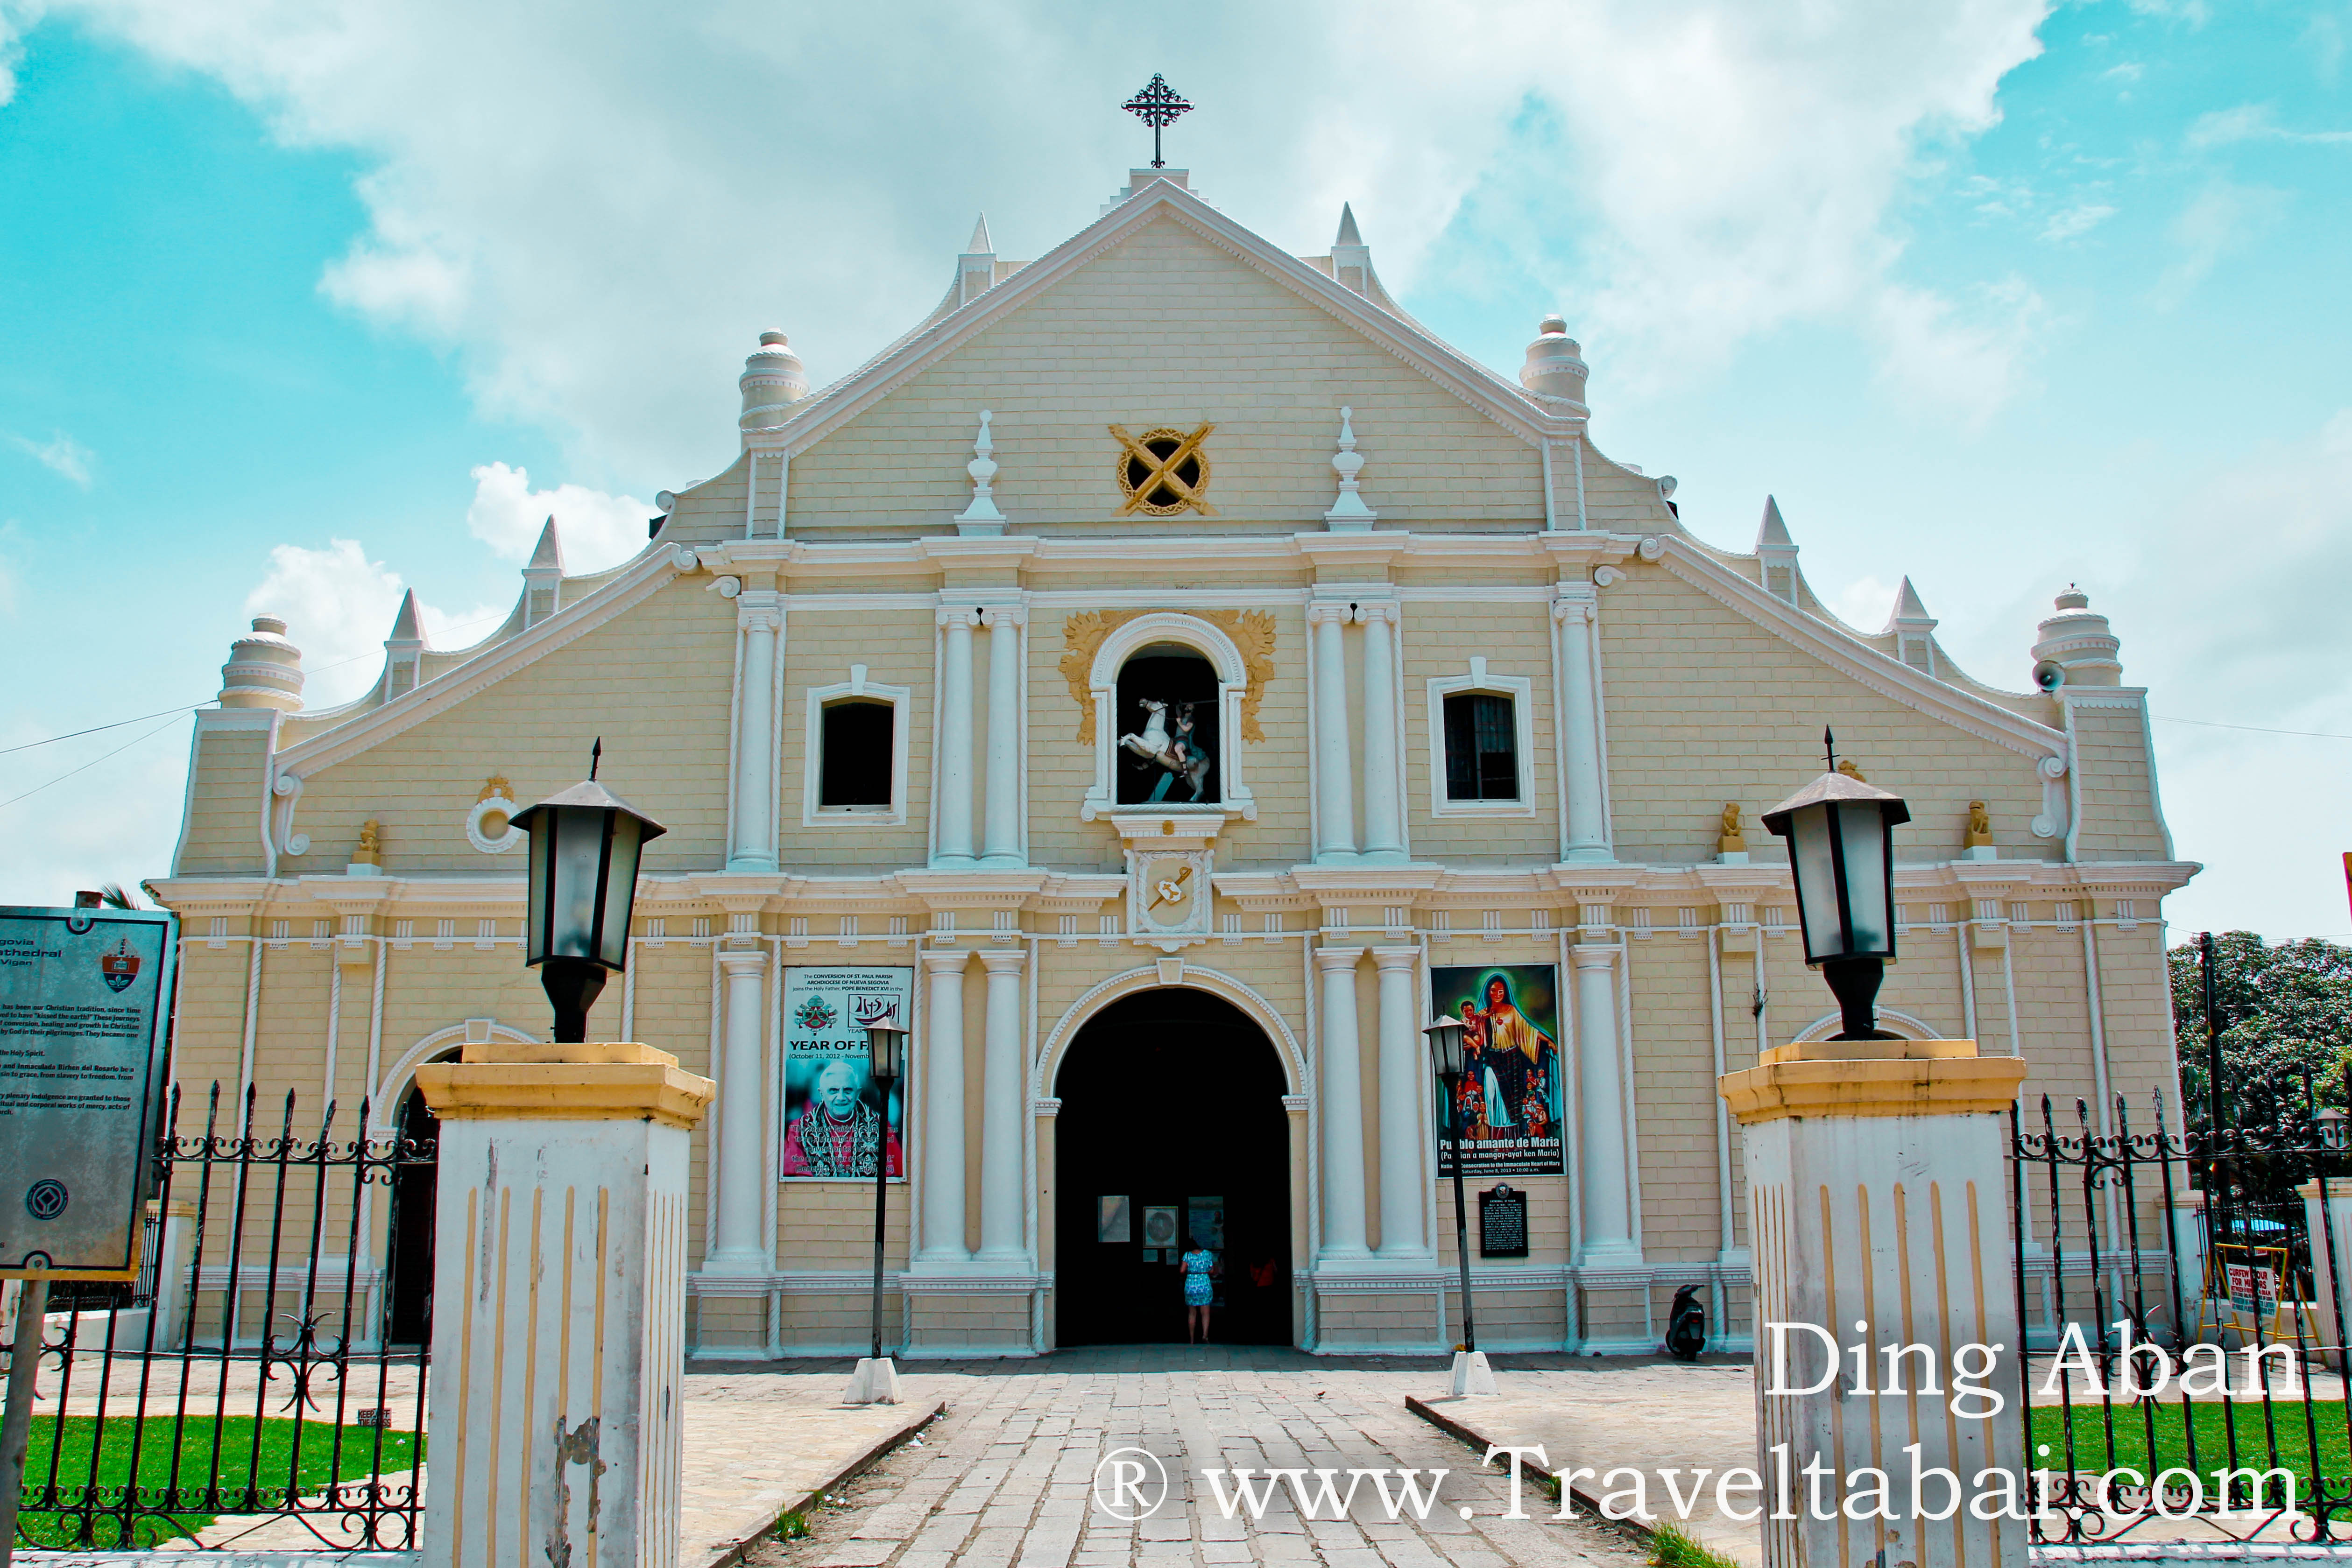 St Paul Cathedral Vigan, Ilocos Sur: Vigan Cathedral - Travel Ta Bai + 1 | Travel Ta Bai + 1